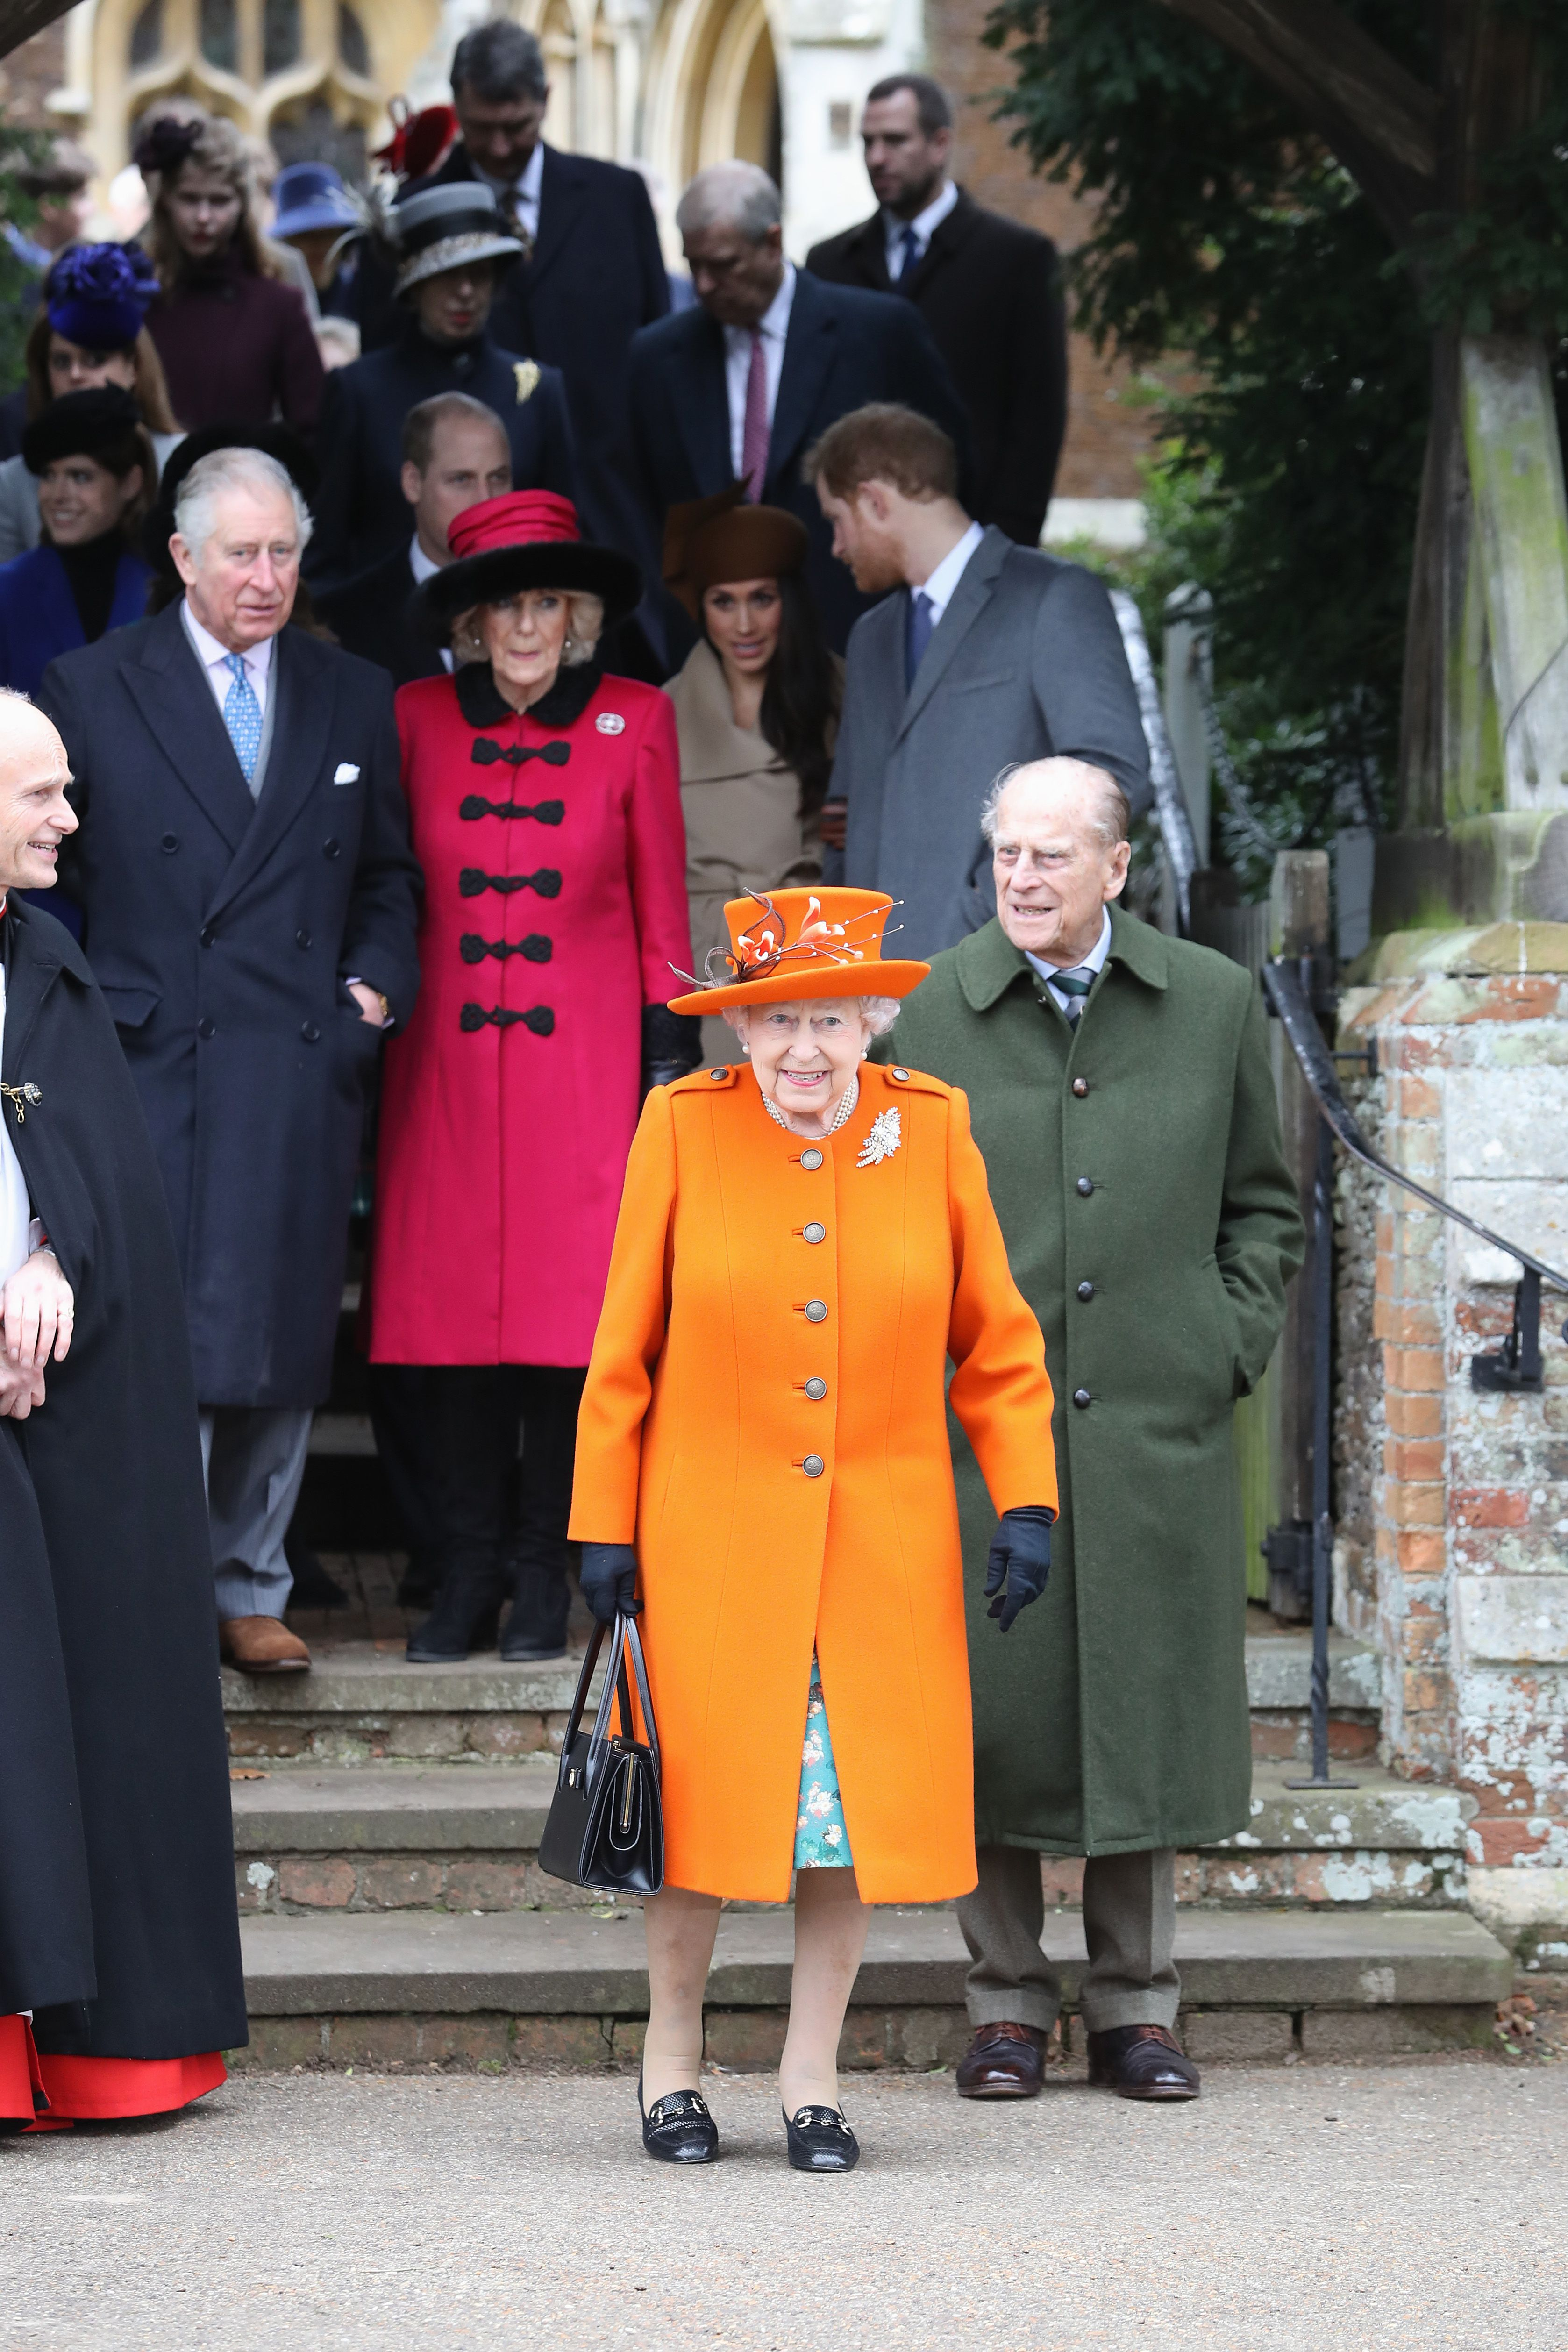 It was previously reported that the Queen extended an invitation.